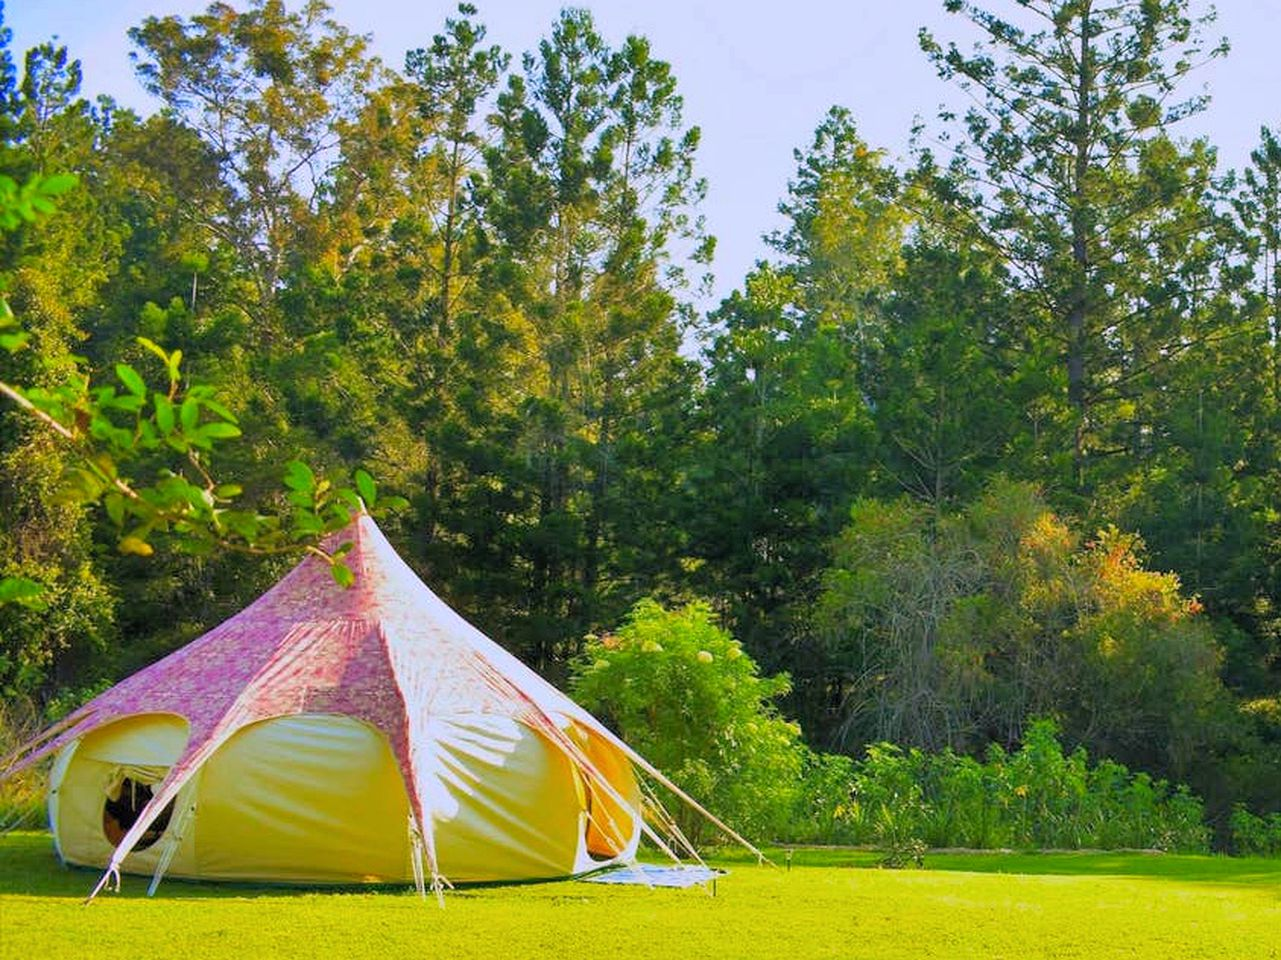 Go glamping in Northern Rivers with this romantic getaway in New South Wales